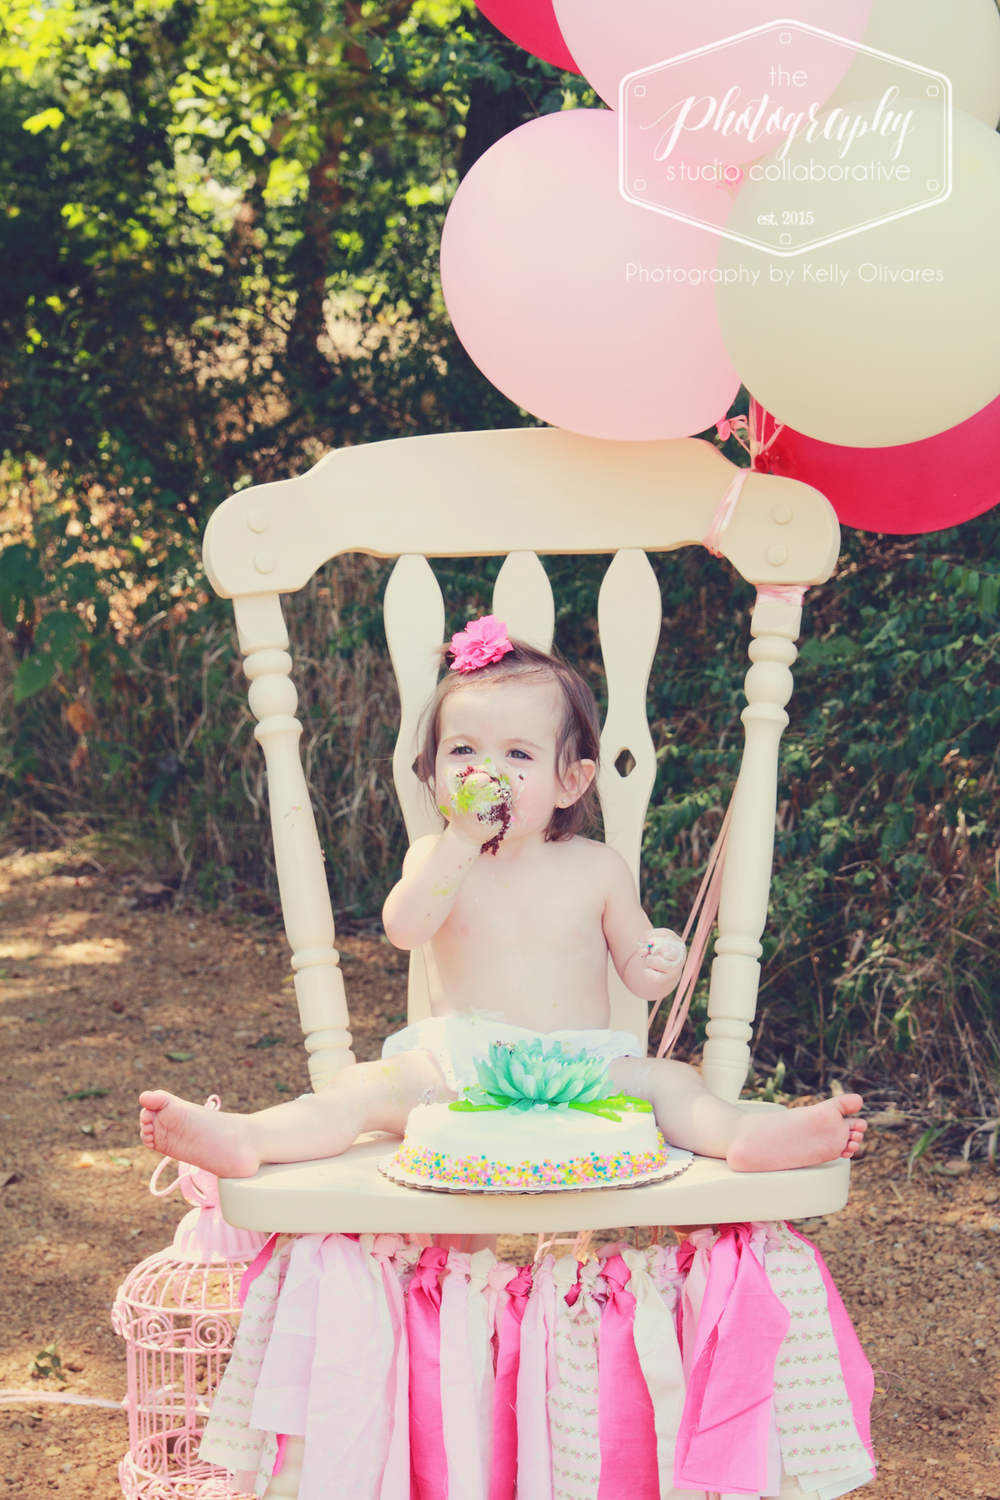 Kelly Olivares Photography Birthday Bash Cake Smash Session